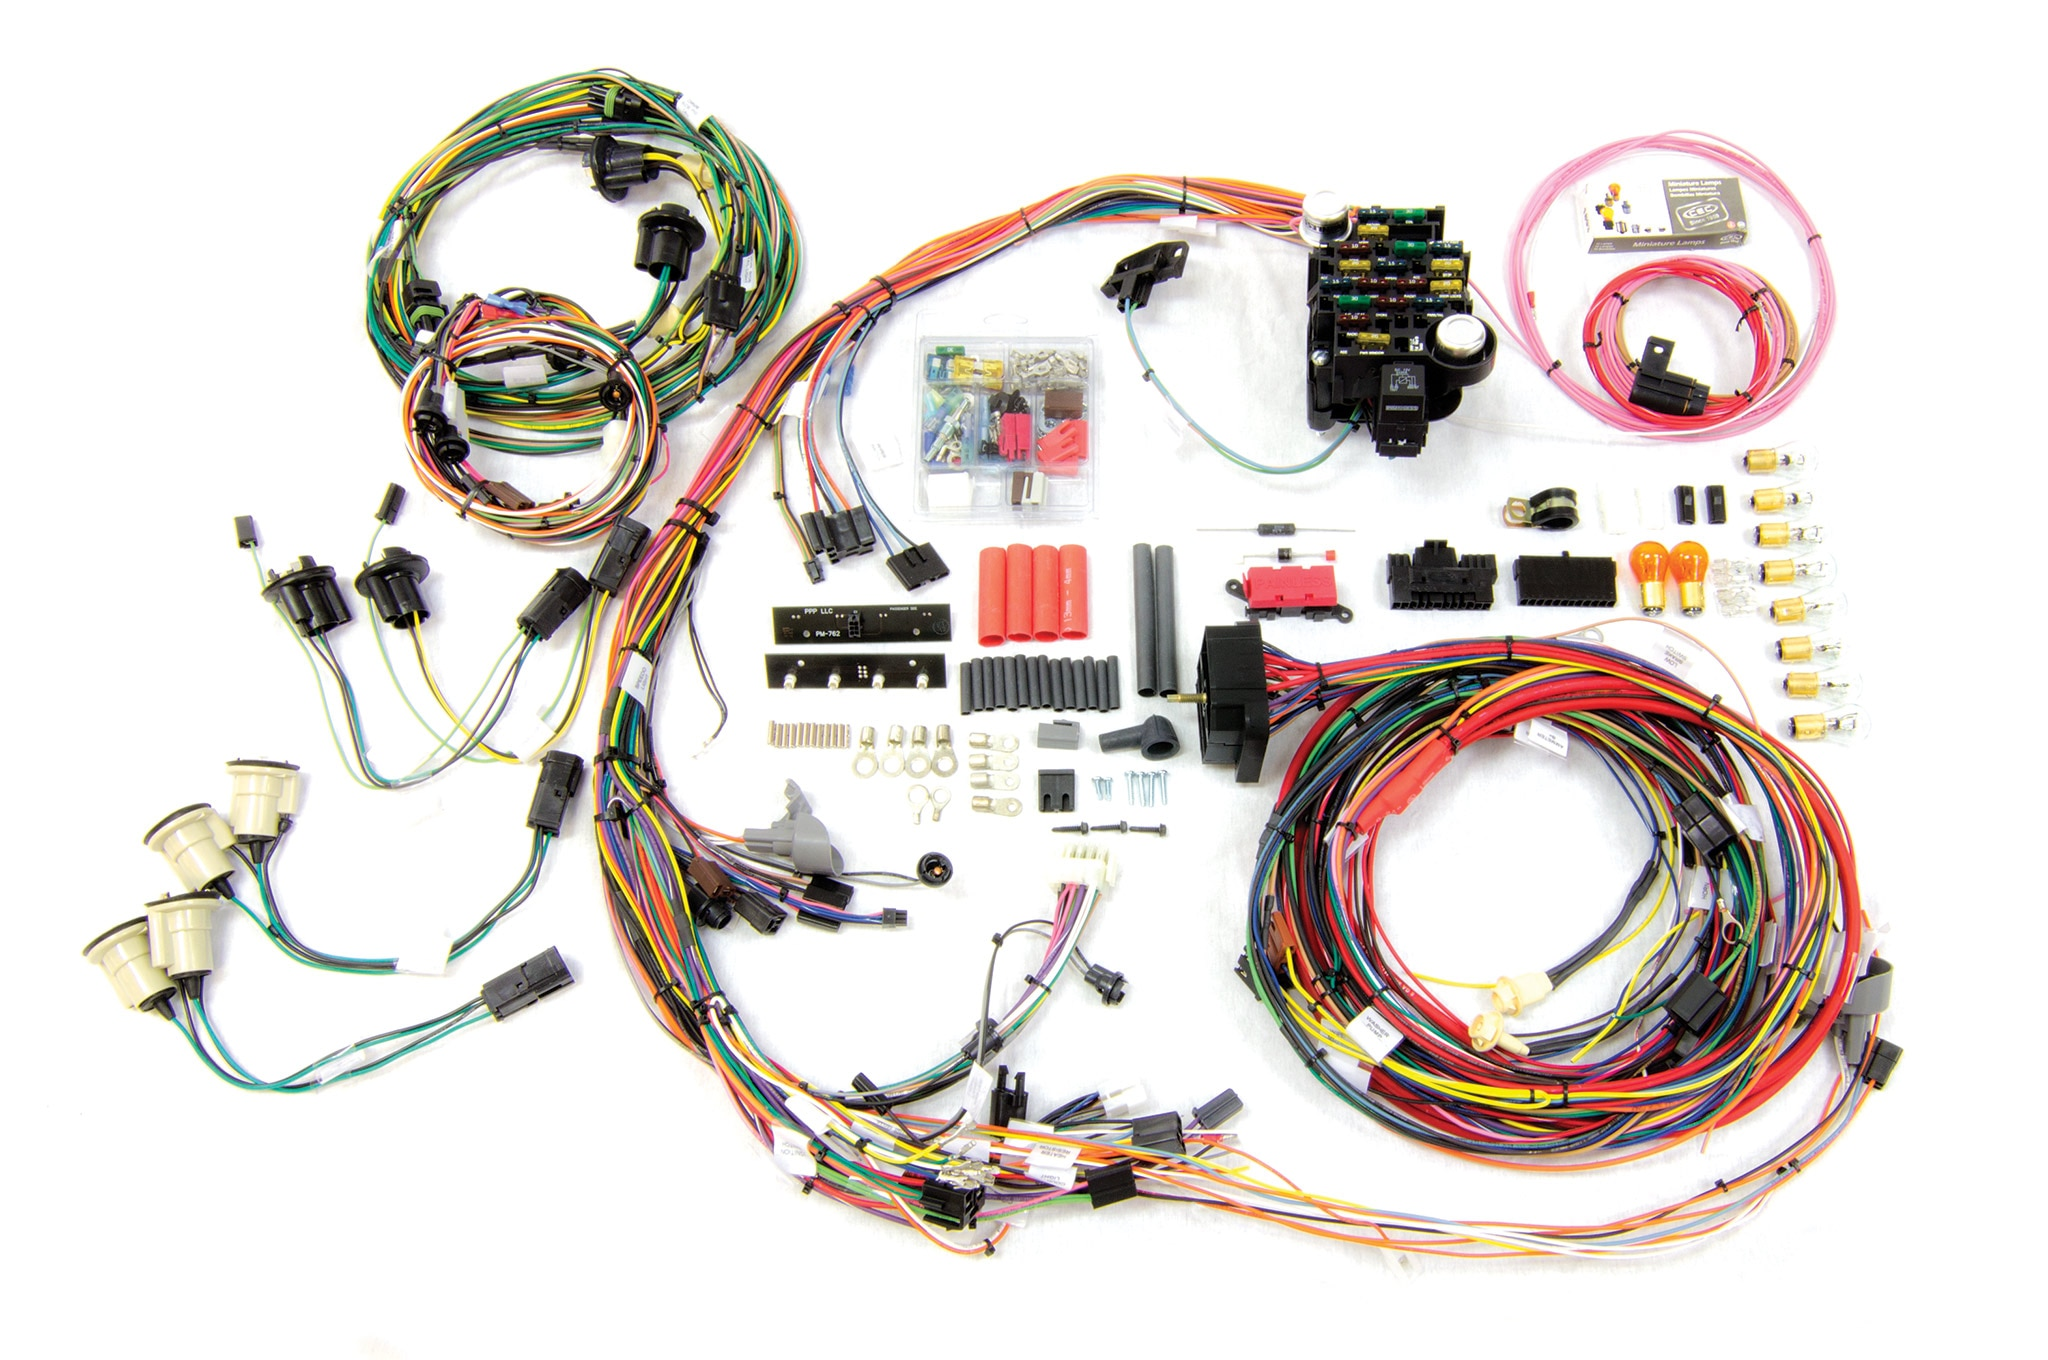 003 Painless Performance Wiring Harness